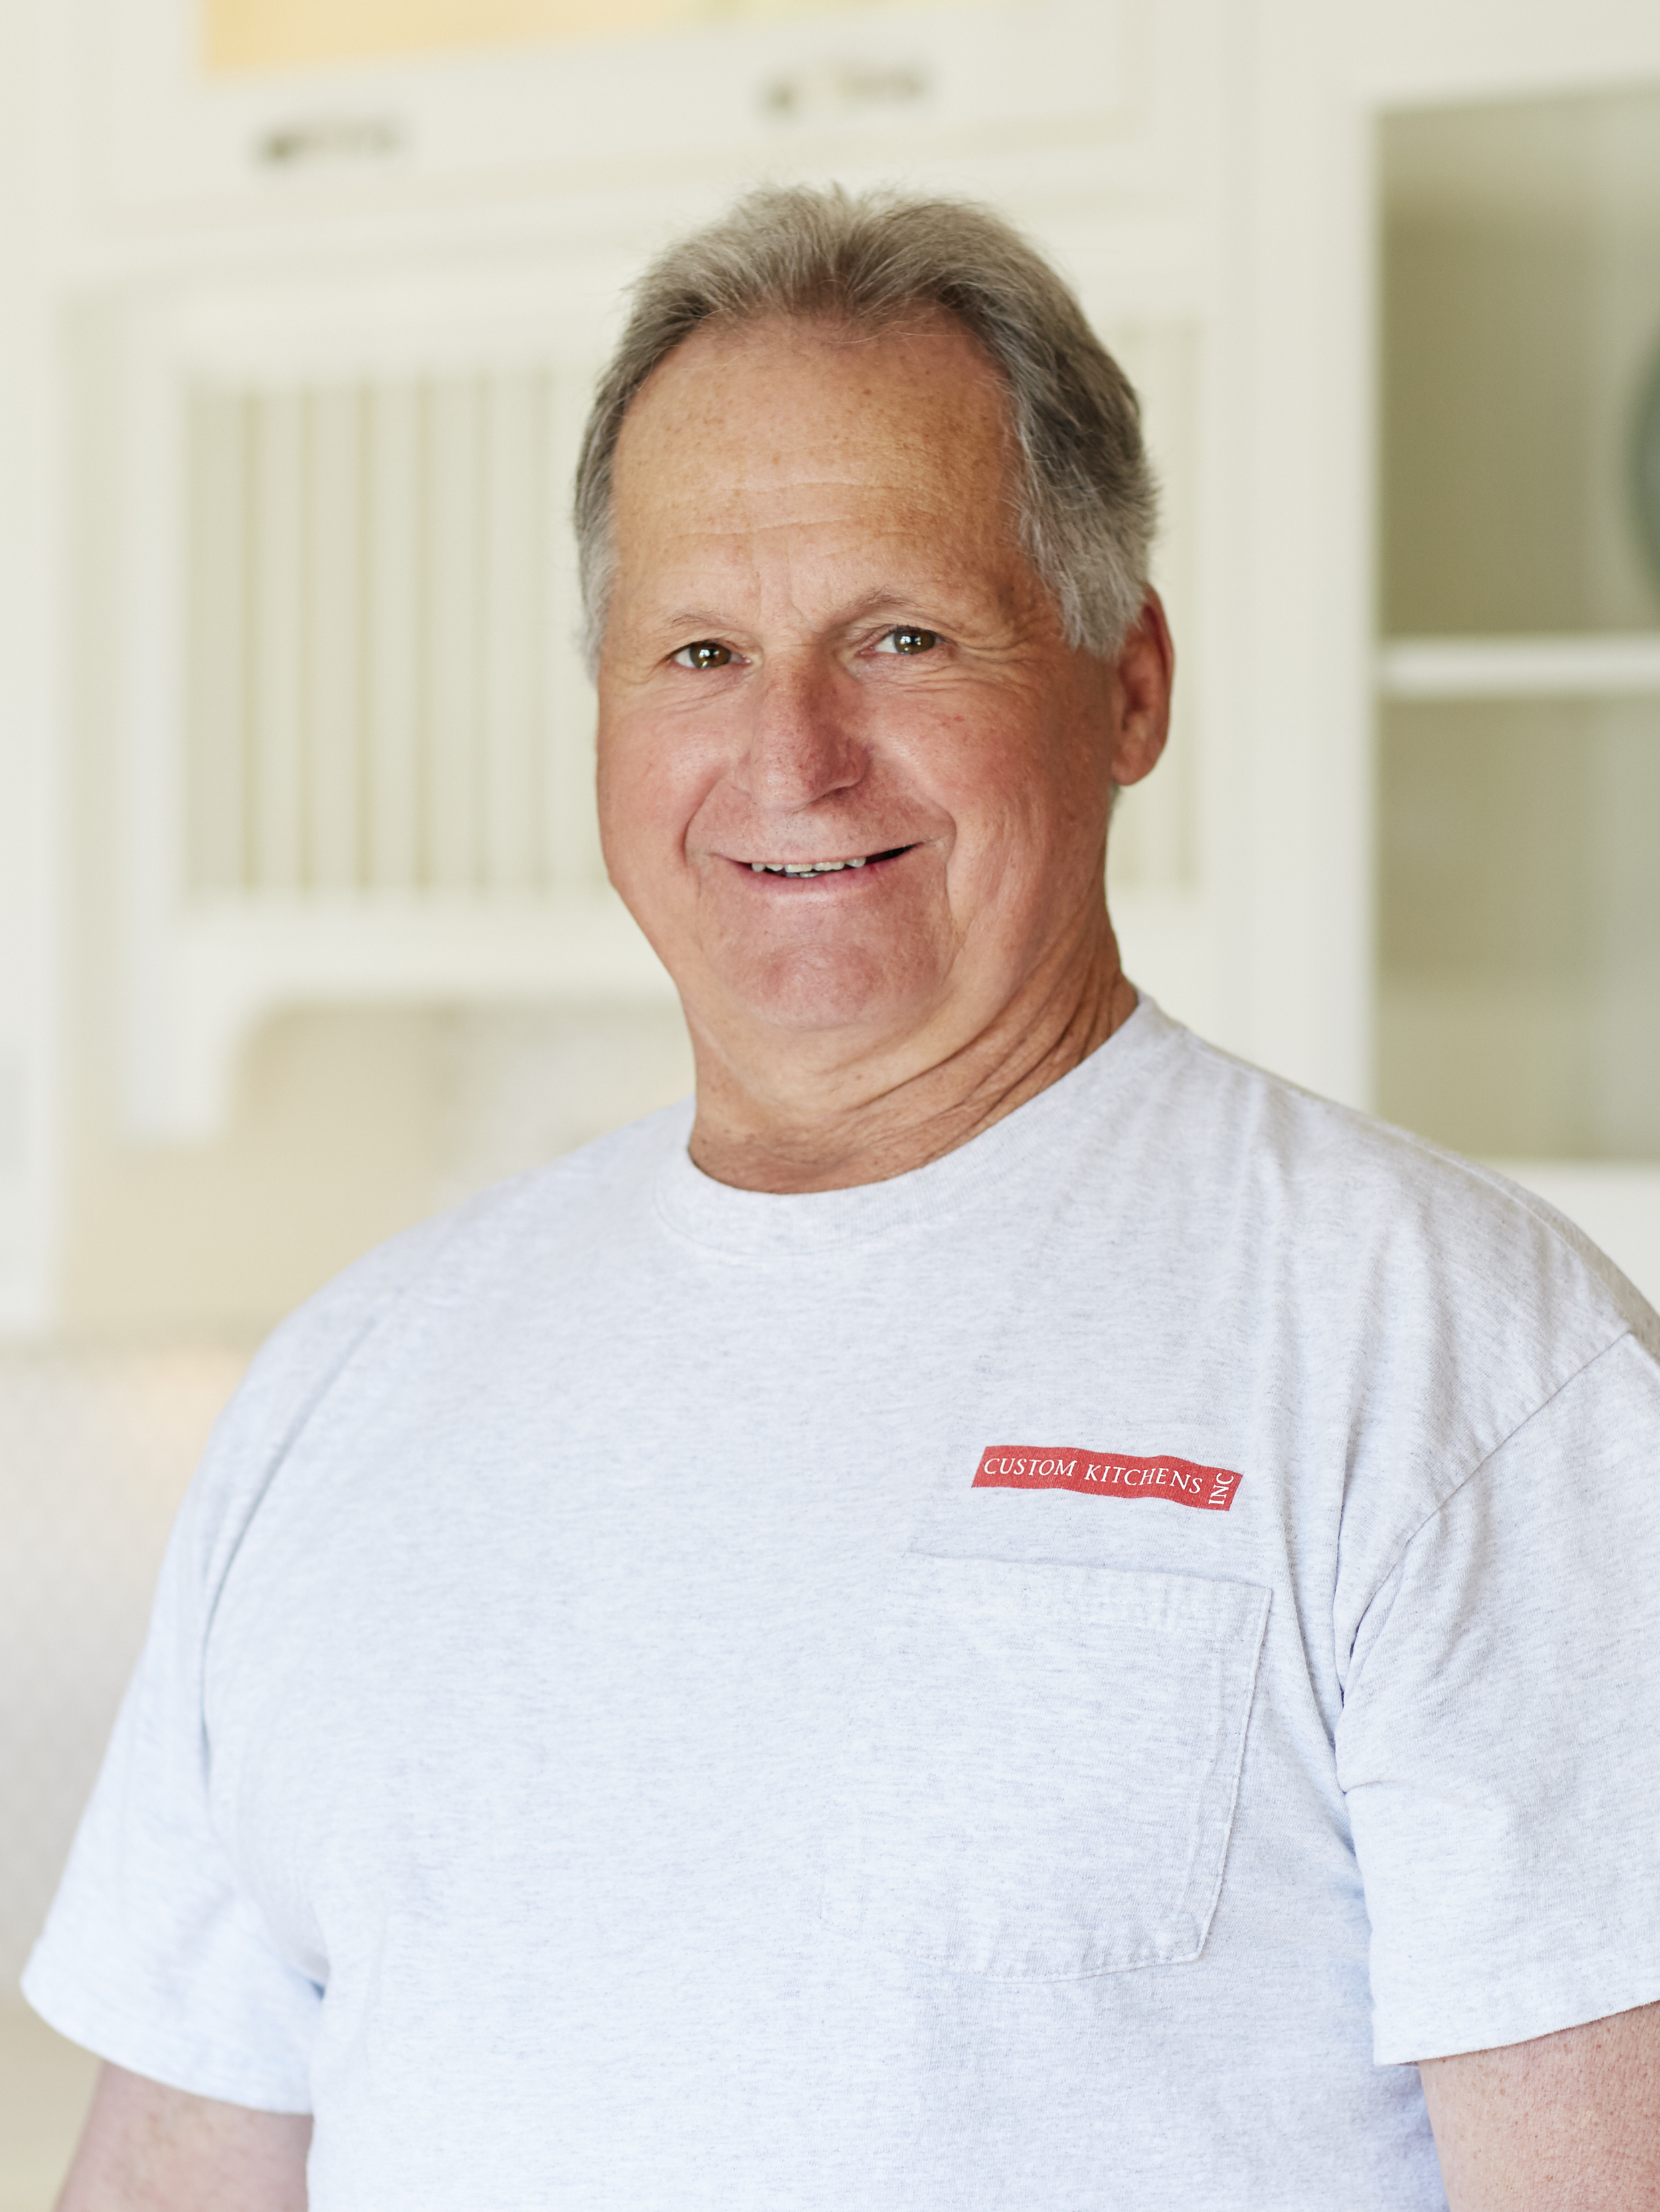 Bobby Hollins  Cabinet Installer  Bobby's history with cabinets goes back 50 years, but he's been with us for 15. He enjoys making a puzzle work, and how each job is different. When he's not at work he enjoys dancing and sharing his work ethic with his kids.